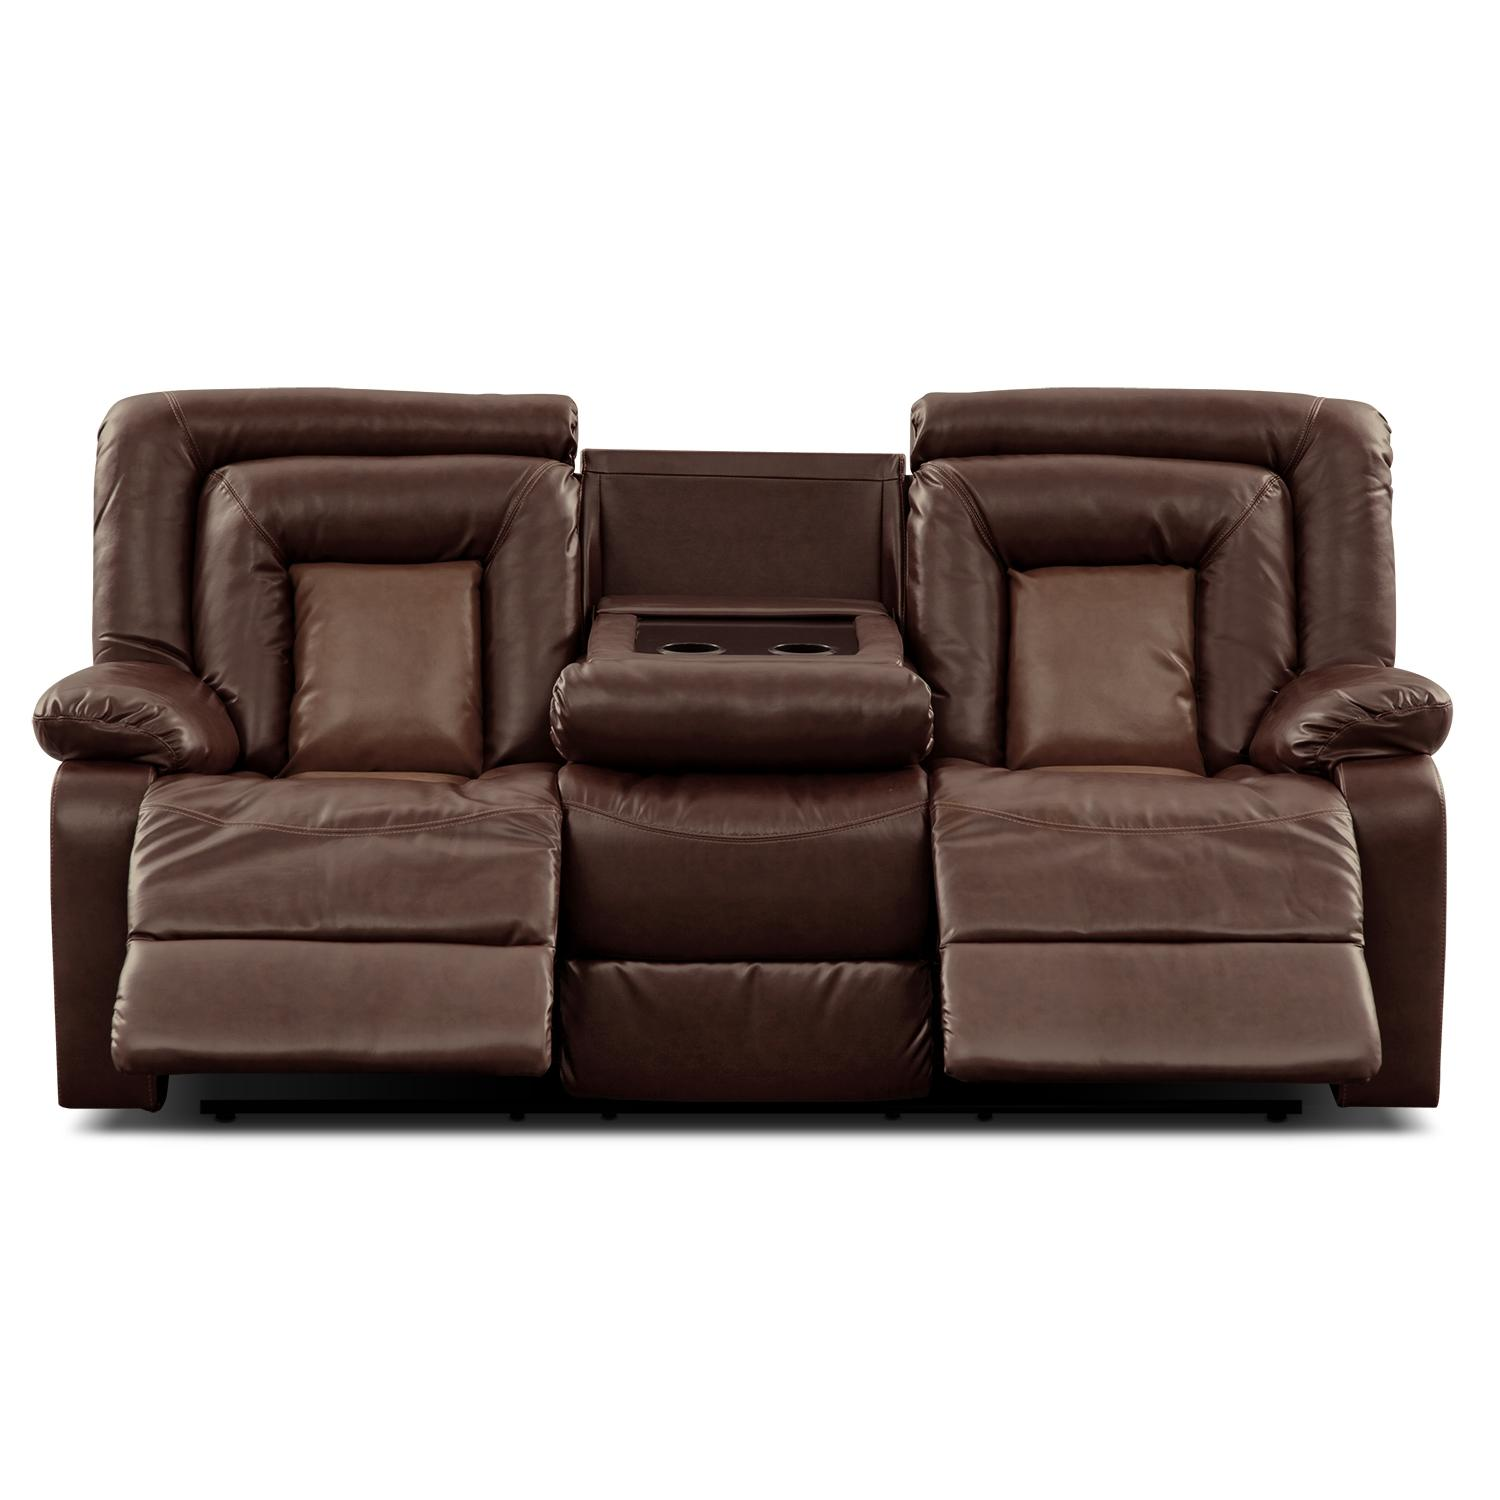 cobra dual reclining sofa reviews sectional connectors uk leather value from